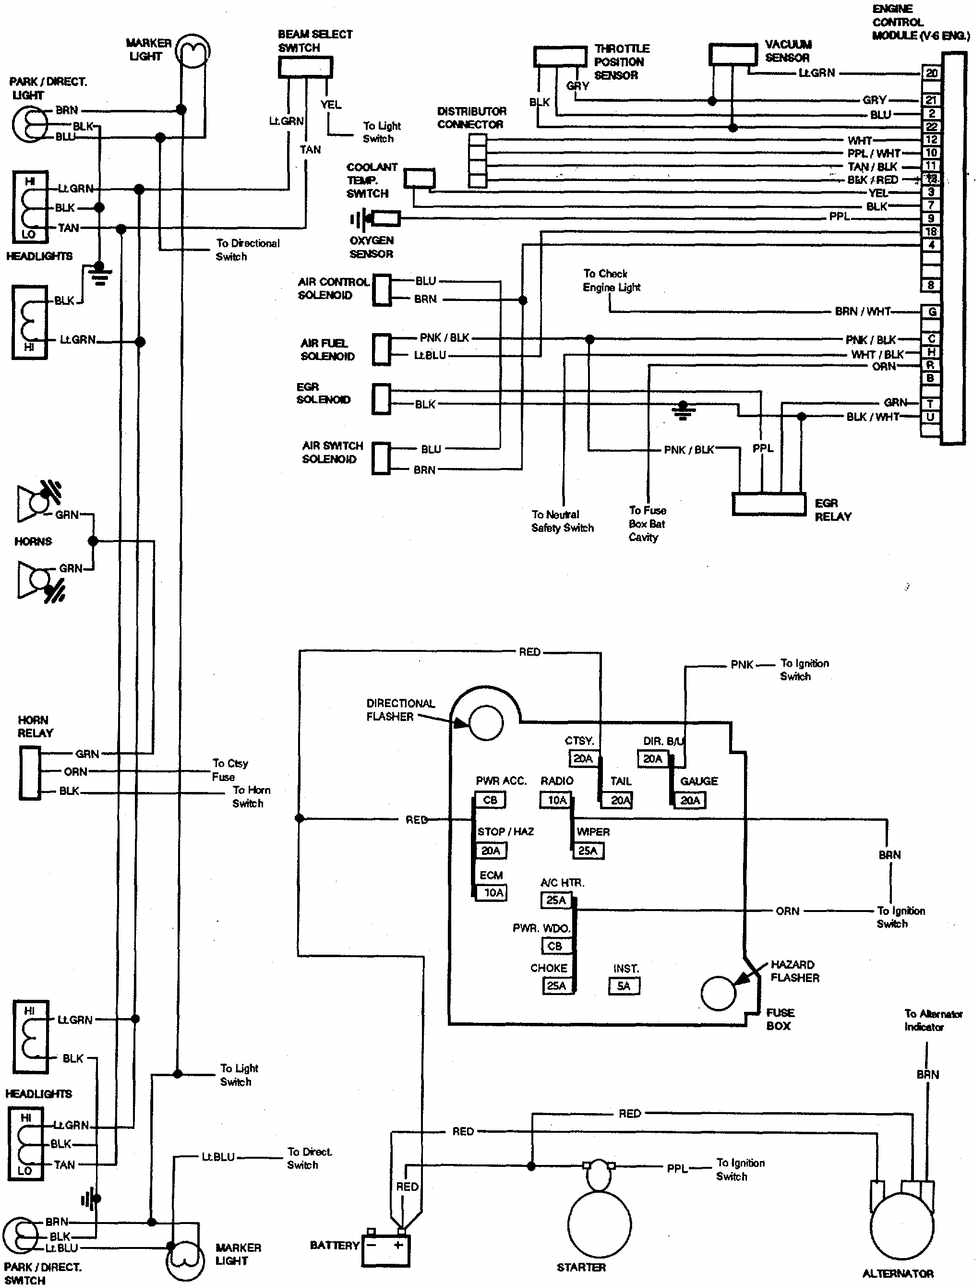 Chevrolet V8 Trucks 1981 1987 on chevy impala coil wiring diagram